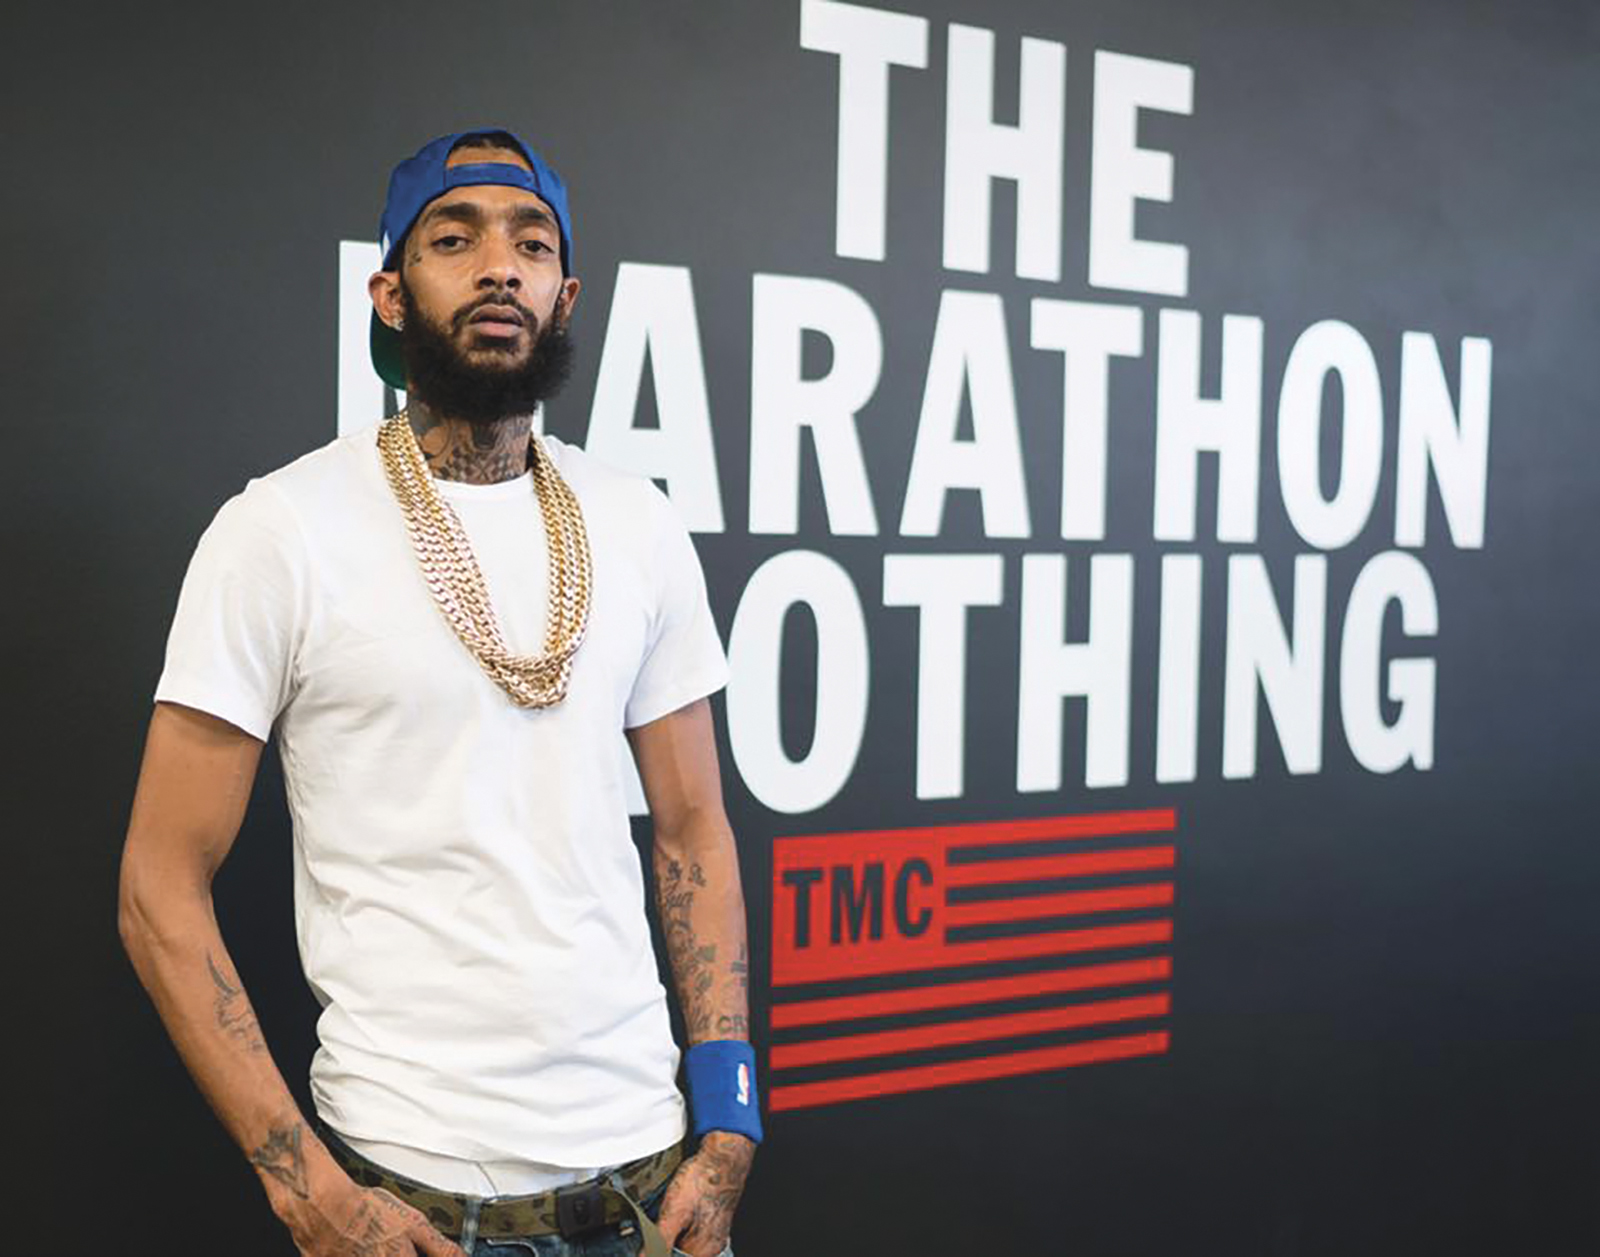 Nipsey Hussle's transformative work in community development, entrepreneurship, economic empowerment and, efforts to end gang violence will be recorded in the Congressional Record, but all of this comes posthumously.